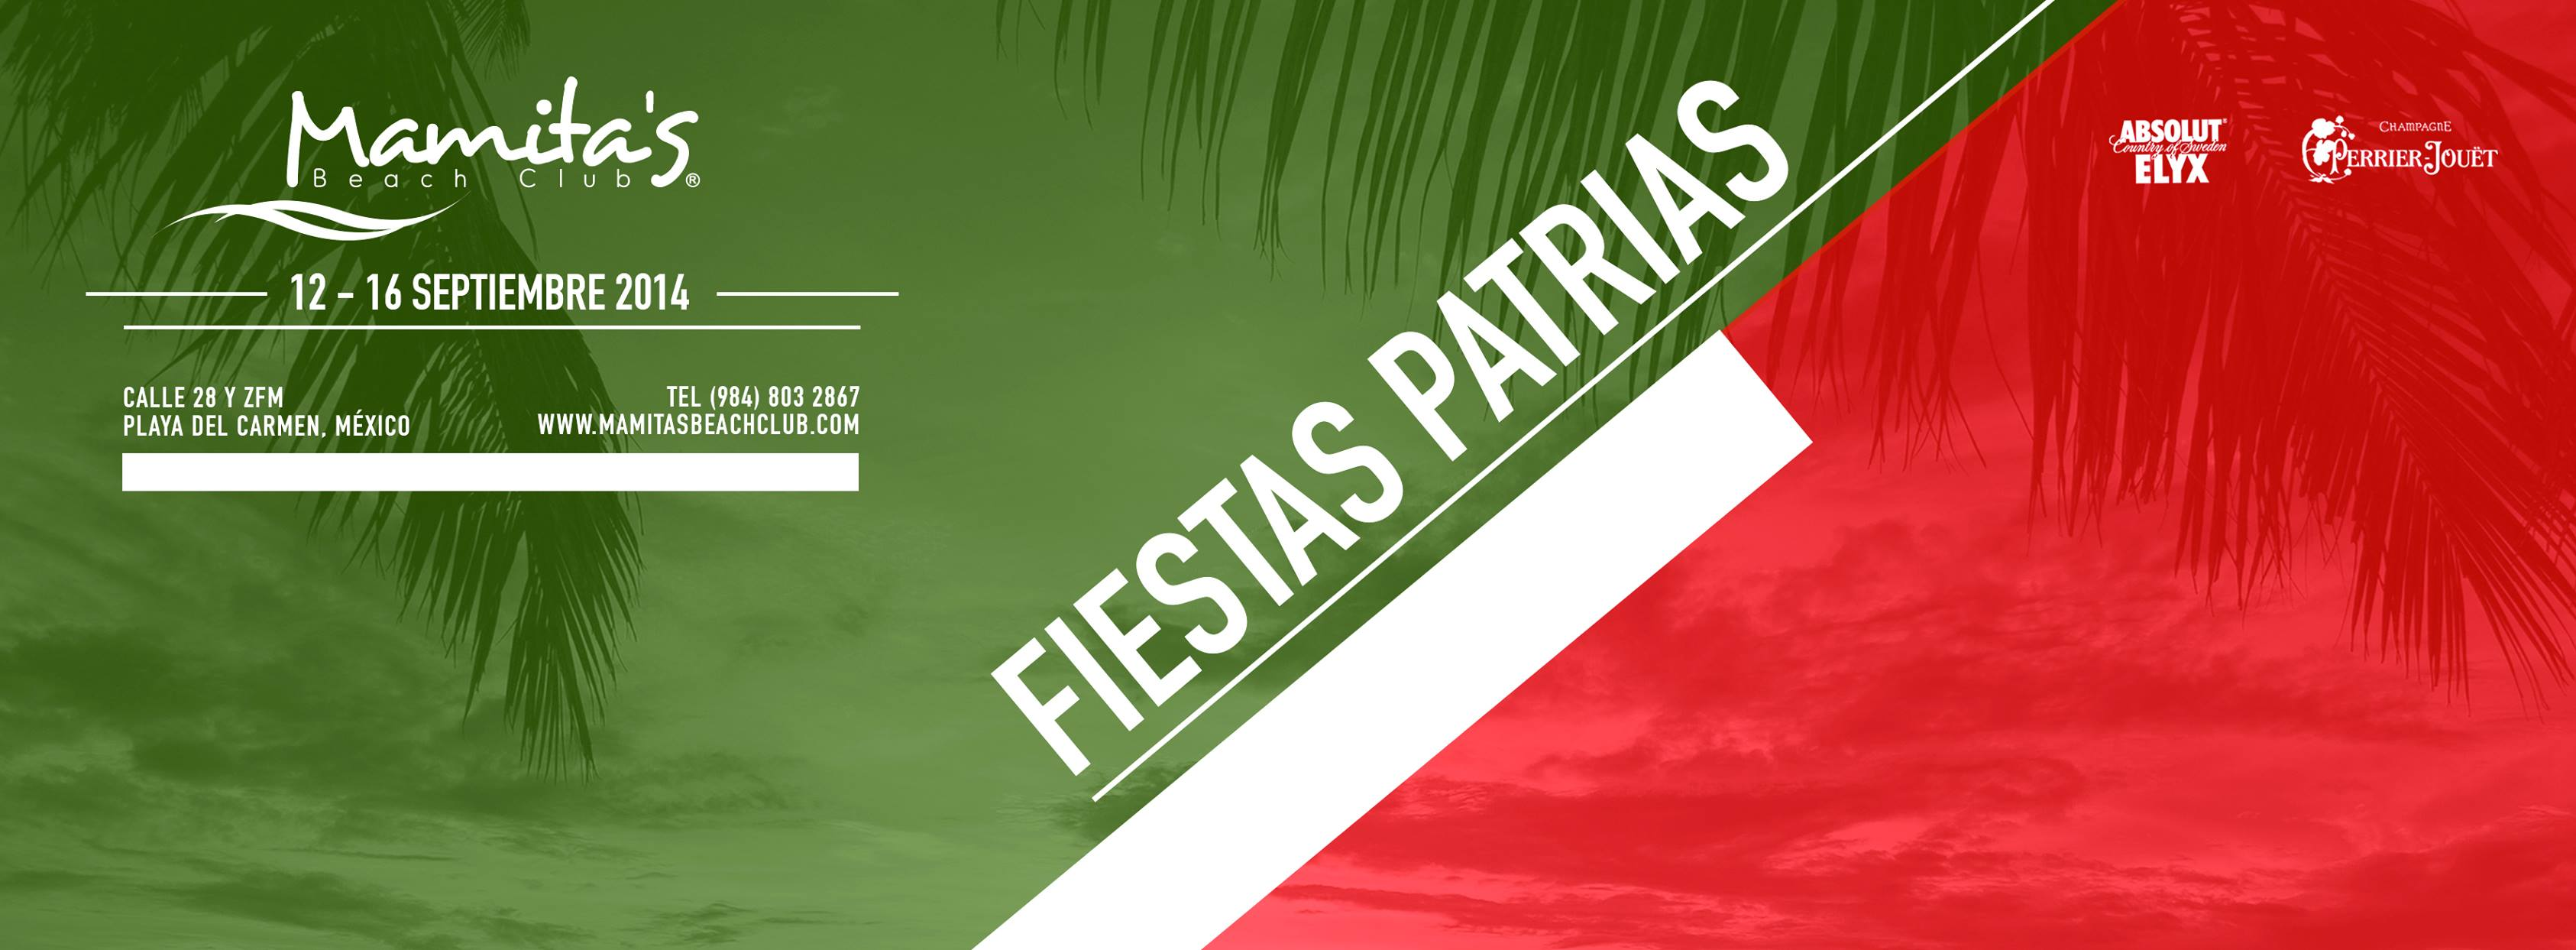 Fiestas Patrias 20144 @ Mamitas Beach Club